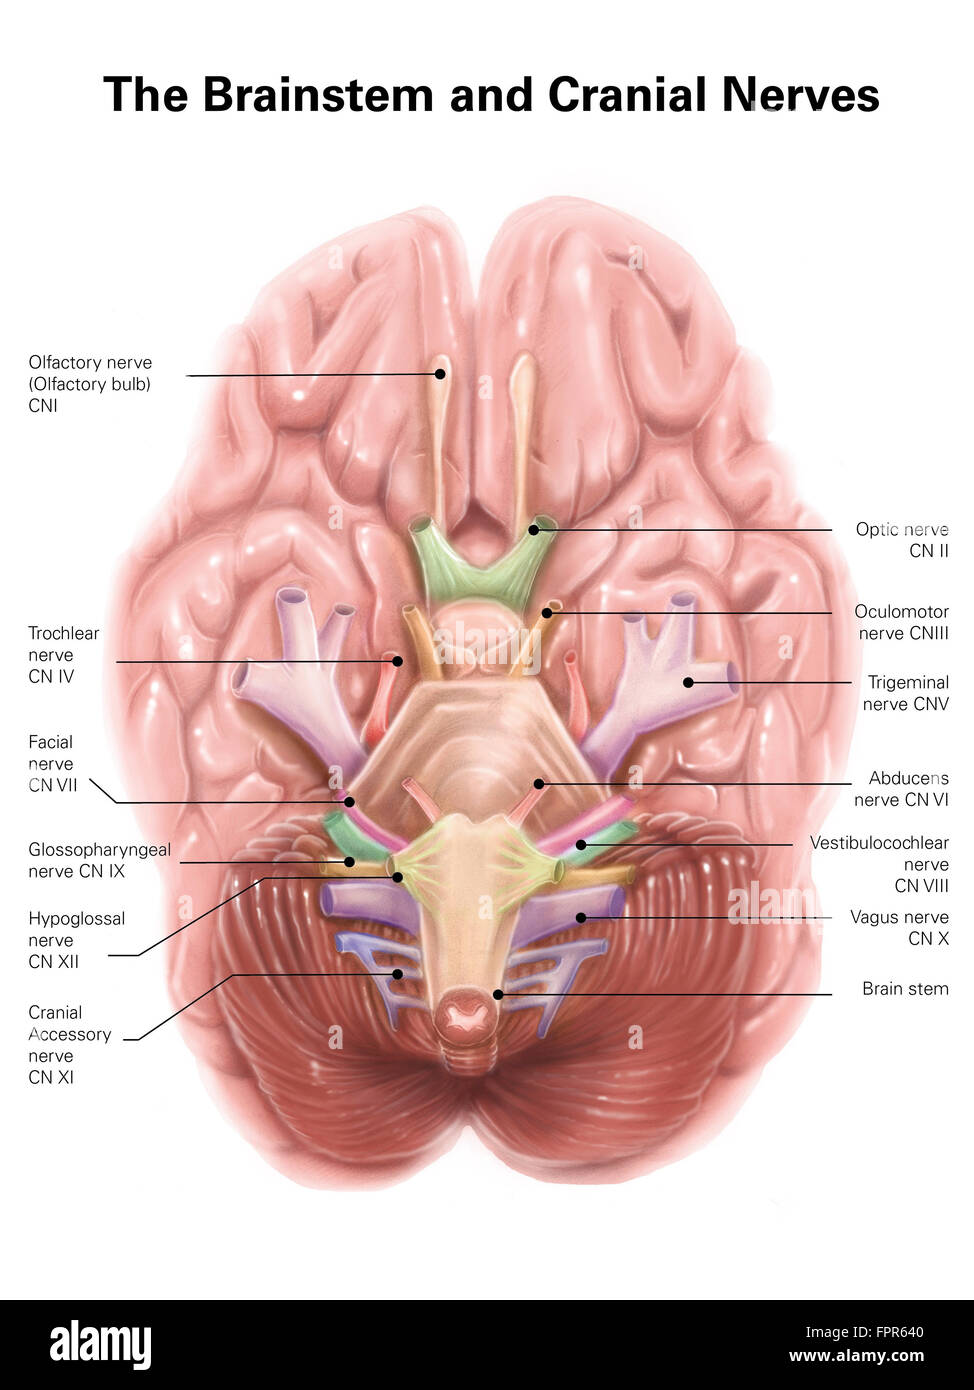 Anatomy of human brain stem and cranial nerves Stock Photo ...